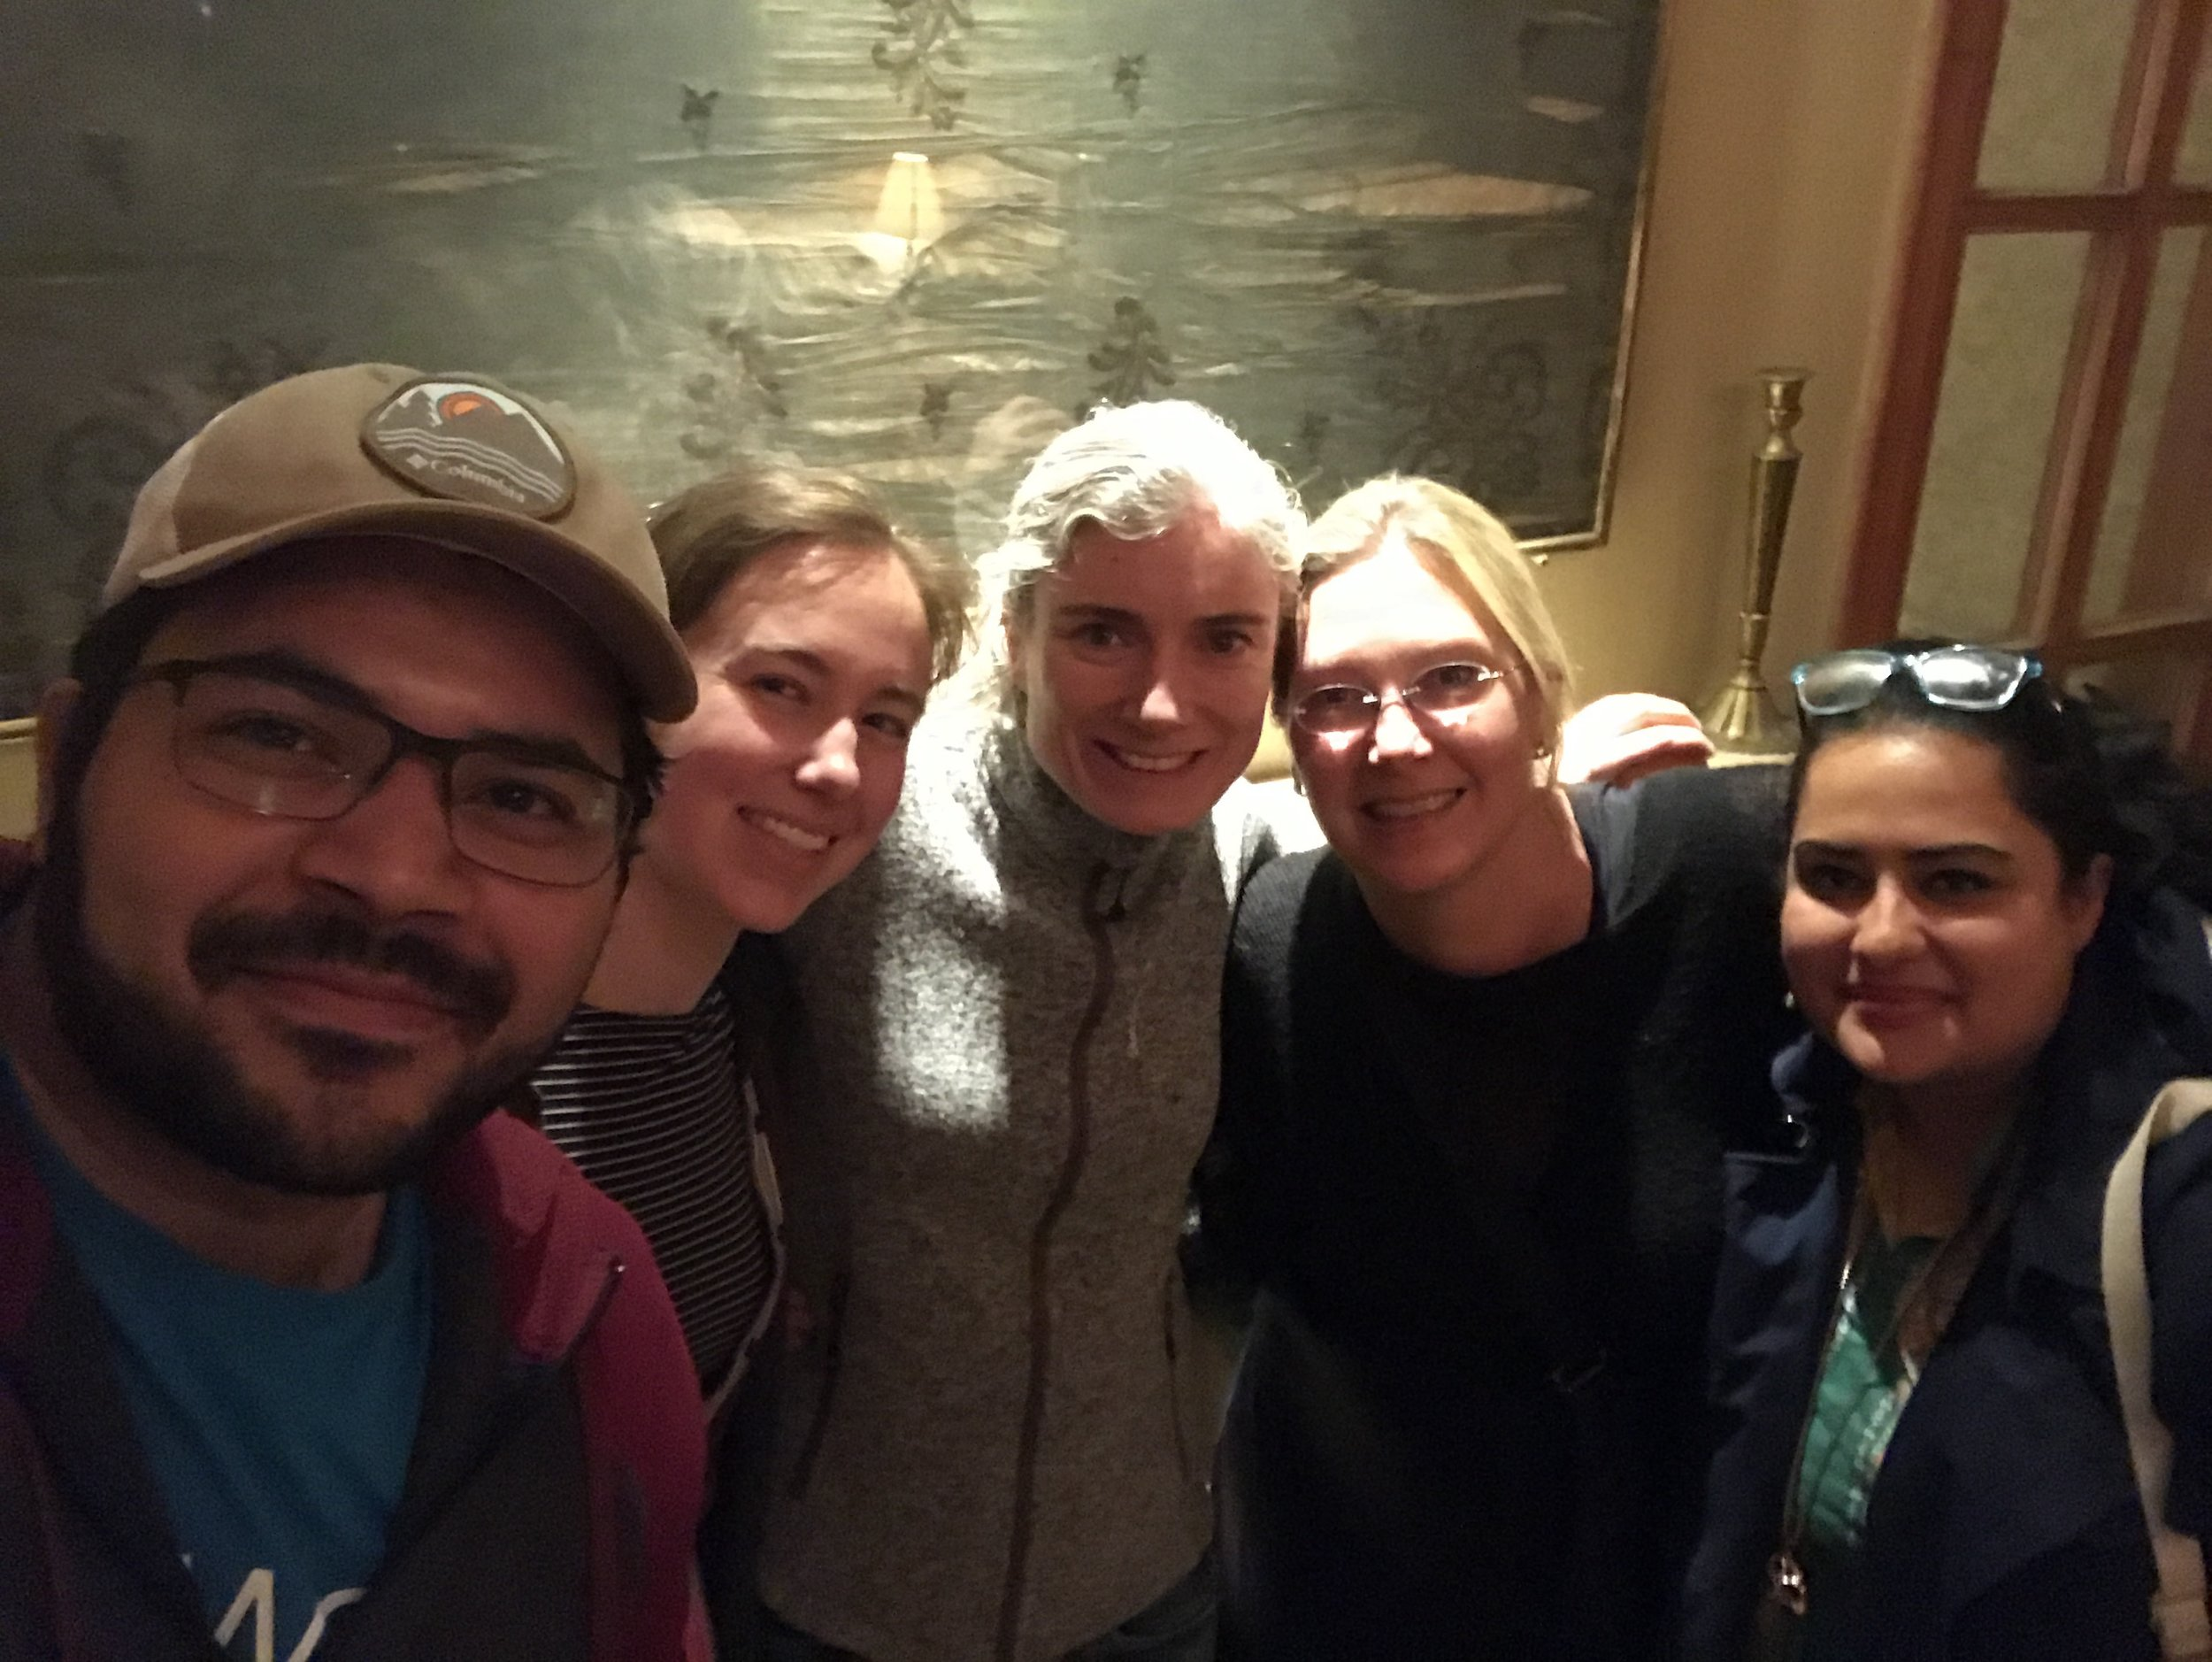 Two research teams (Women in Engineering and Azraq refugee camp) meet for dinner at a local restaurant in Amman.